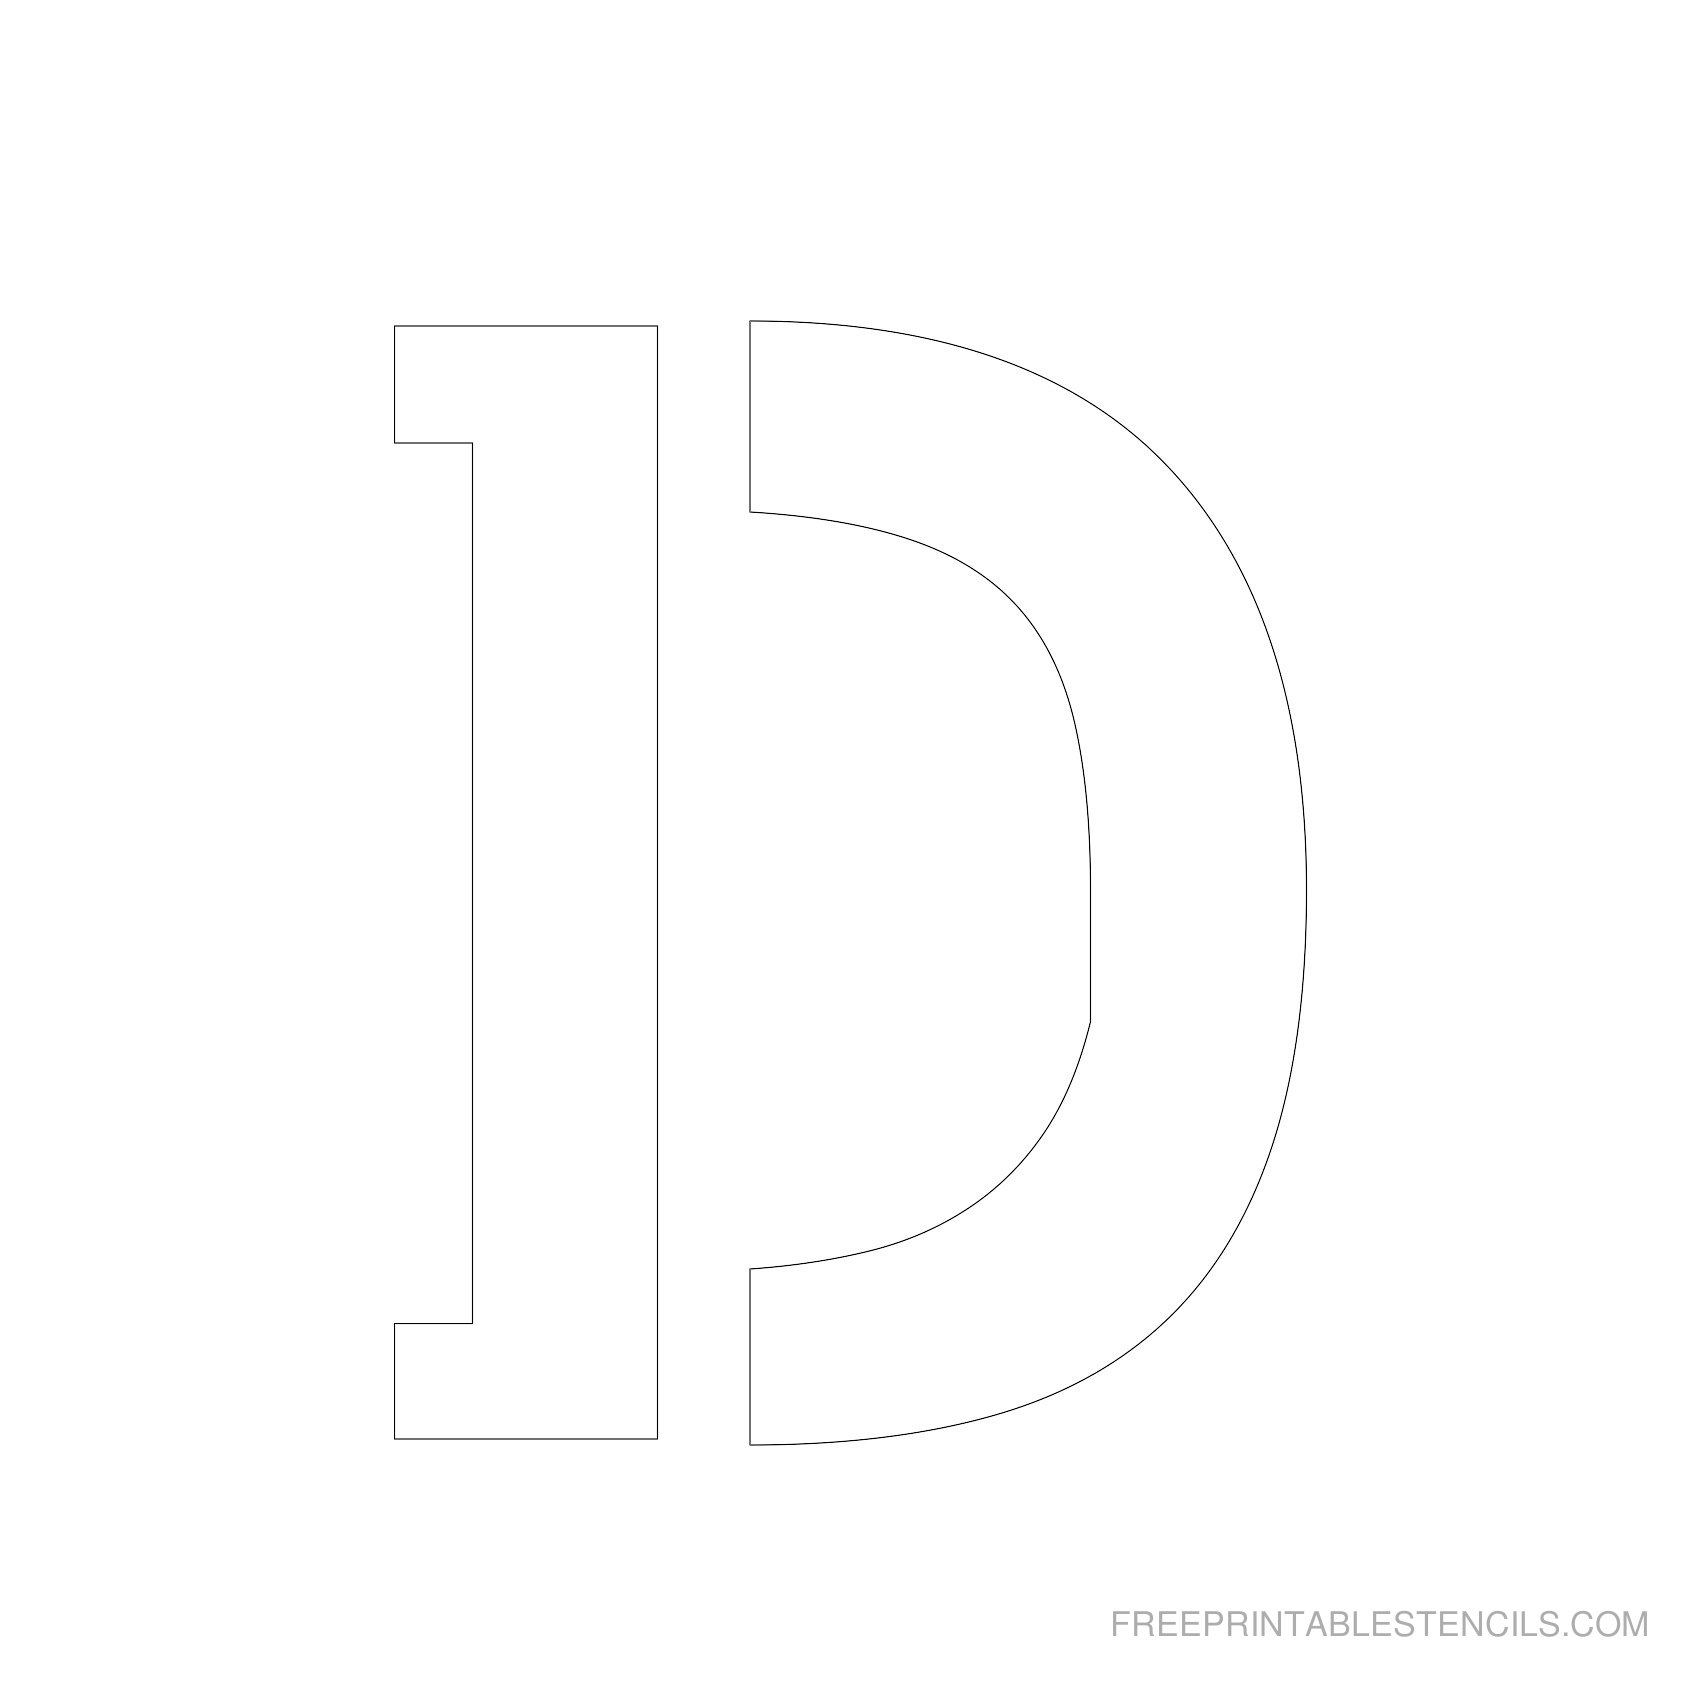 Letter Stencils To Print | Free Printable Stencils - Free Printable Letter Stencils